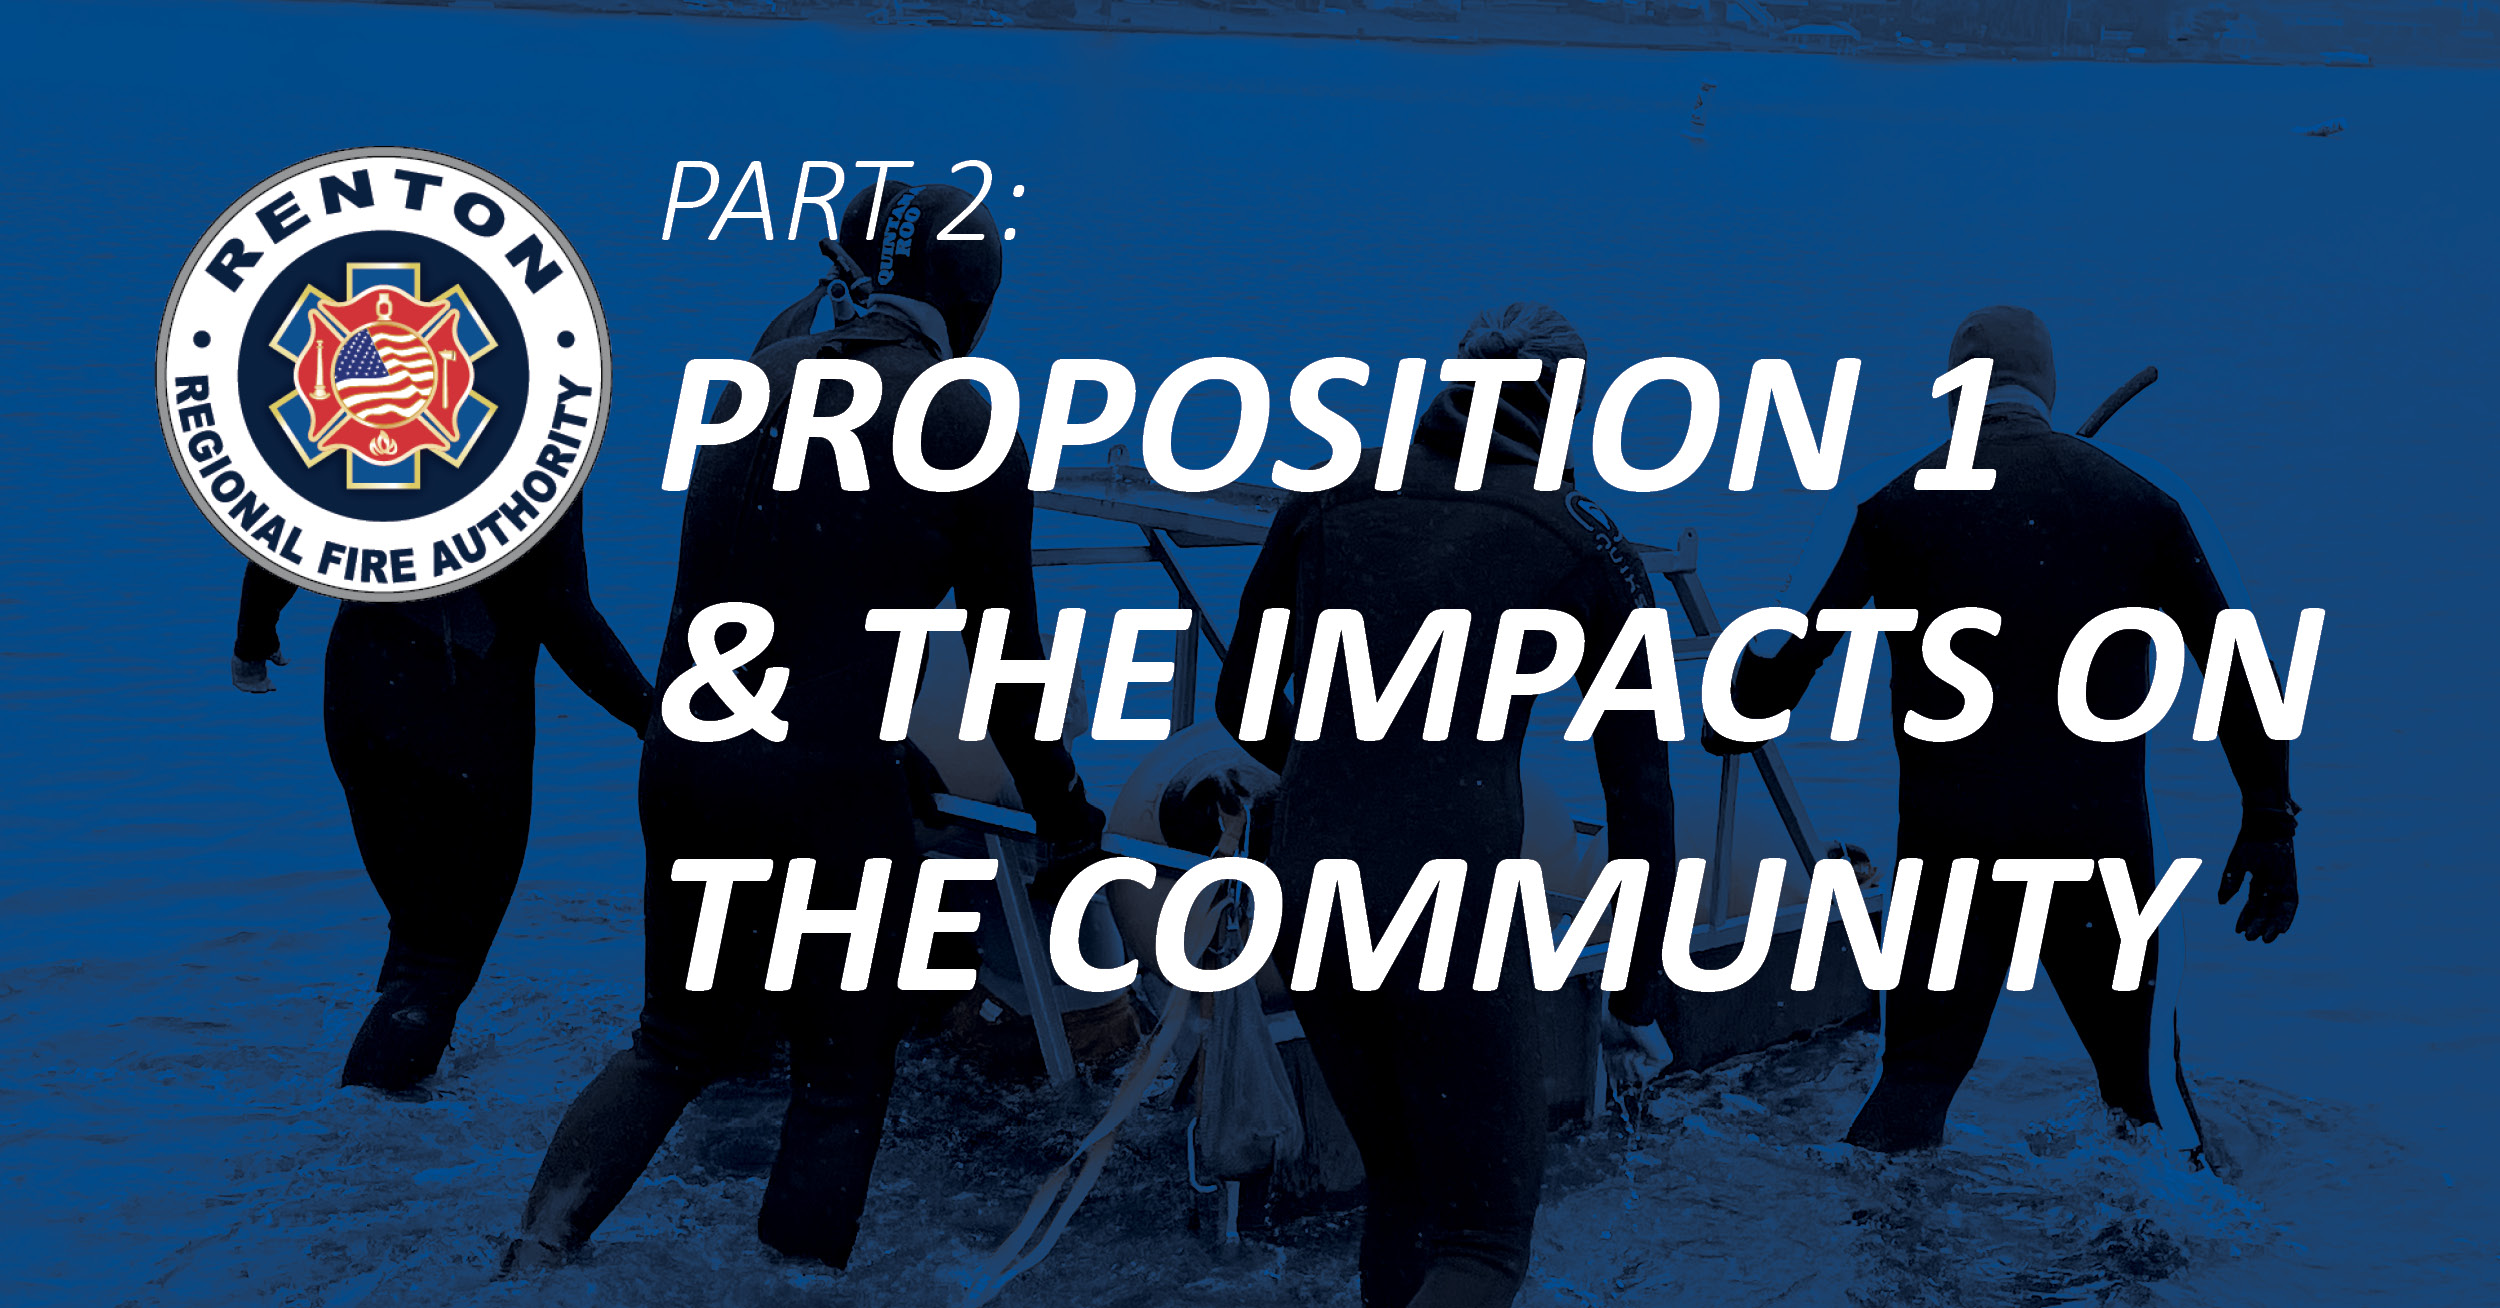 Part 2: Proposition 1 – The Impact on the Community